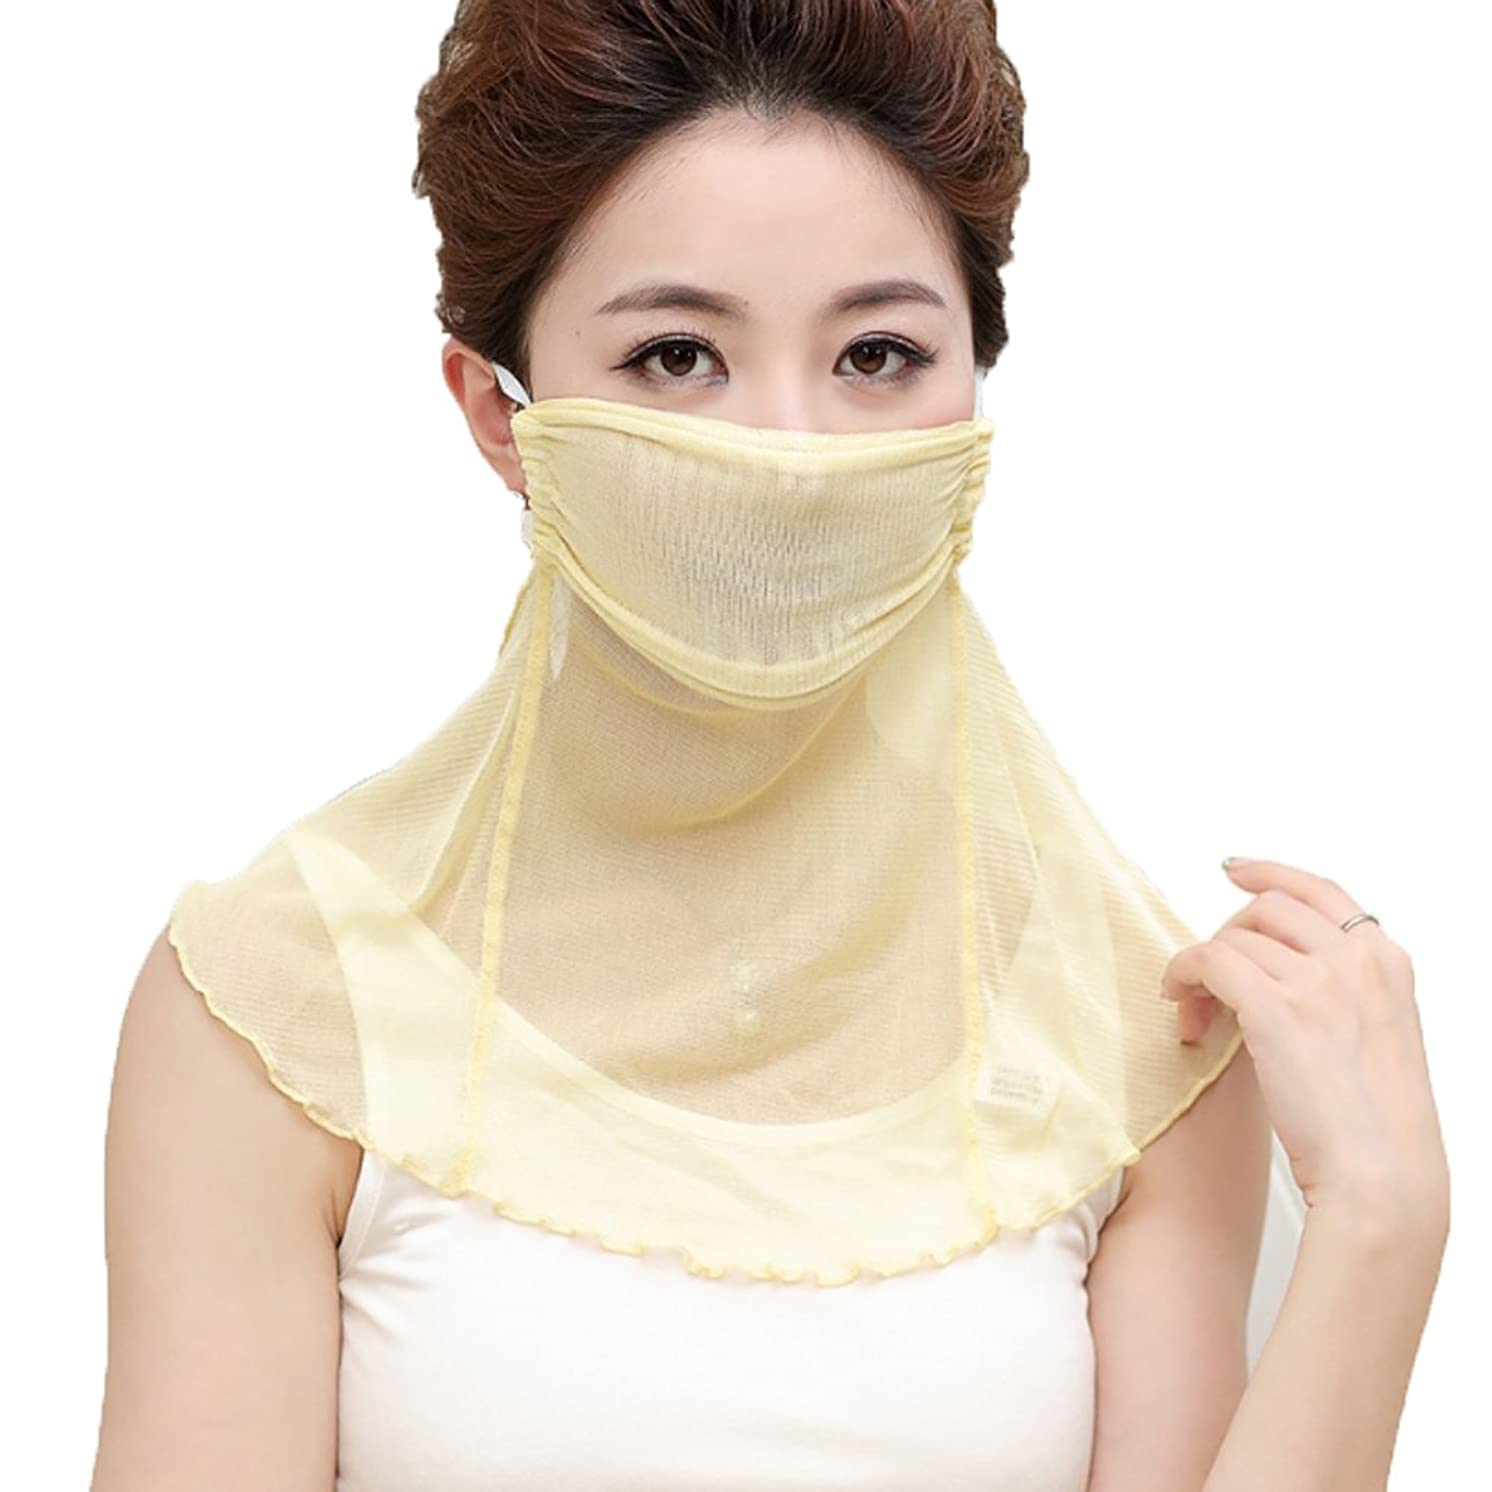 YAKEF Natural Silk mask Scarf Women's Anti-dust Mask Prevent Sun Mask Mulberry Silk Face Veil Small Scarf.